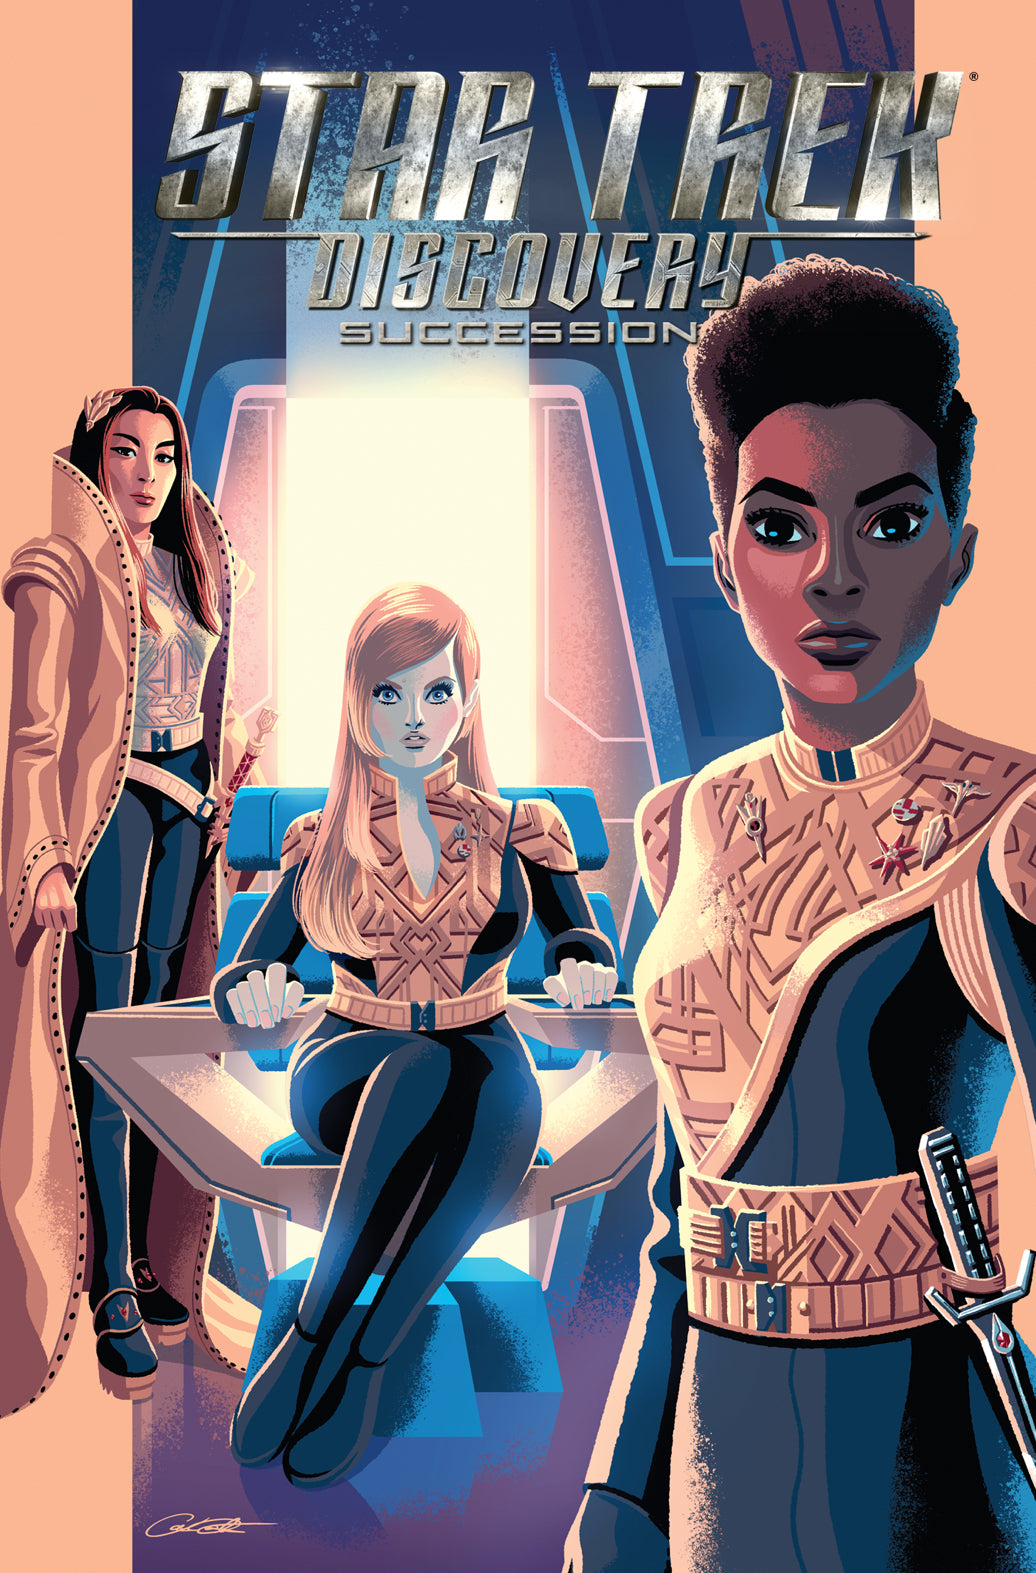 STAR TREK DISCOVERY SUCCESSION TP (C: 0-1-2)